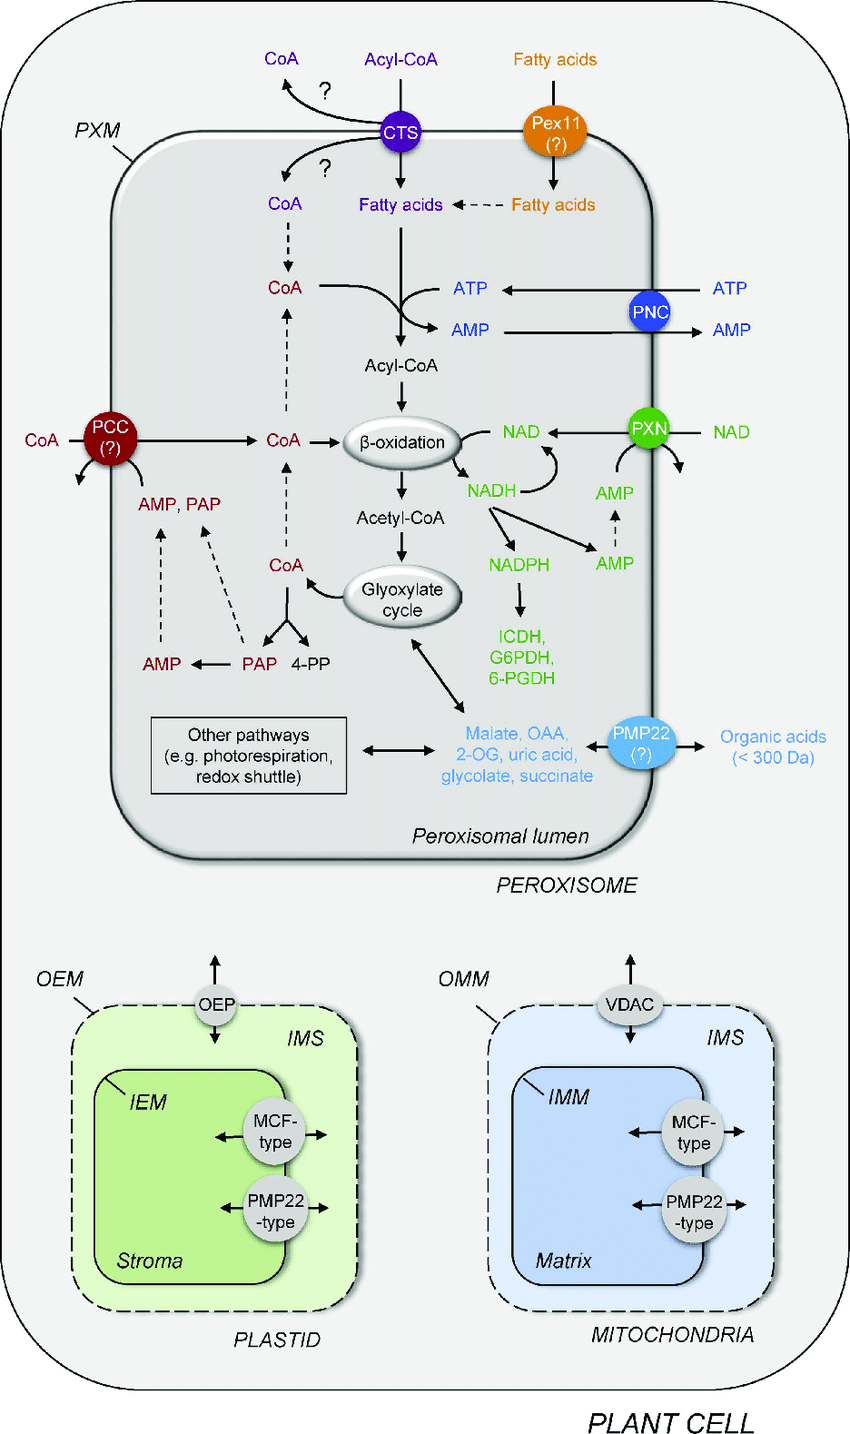 hight resolution of scheme of a plant cell presenting the known peroxisomal transporter and channel proteins connecting peroxisomal metabolism